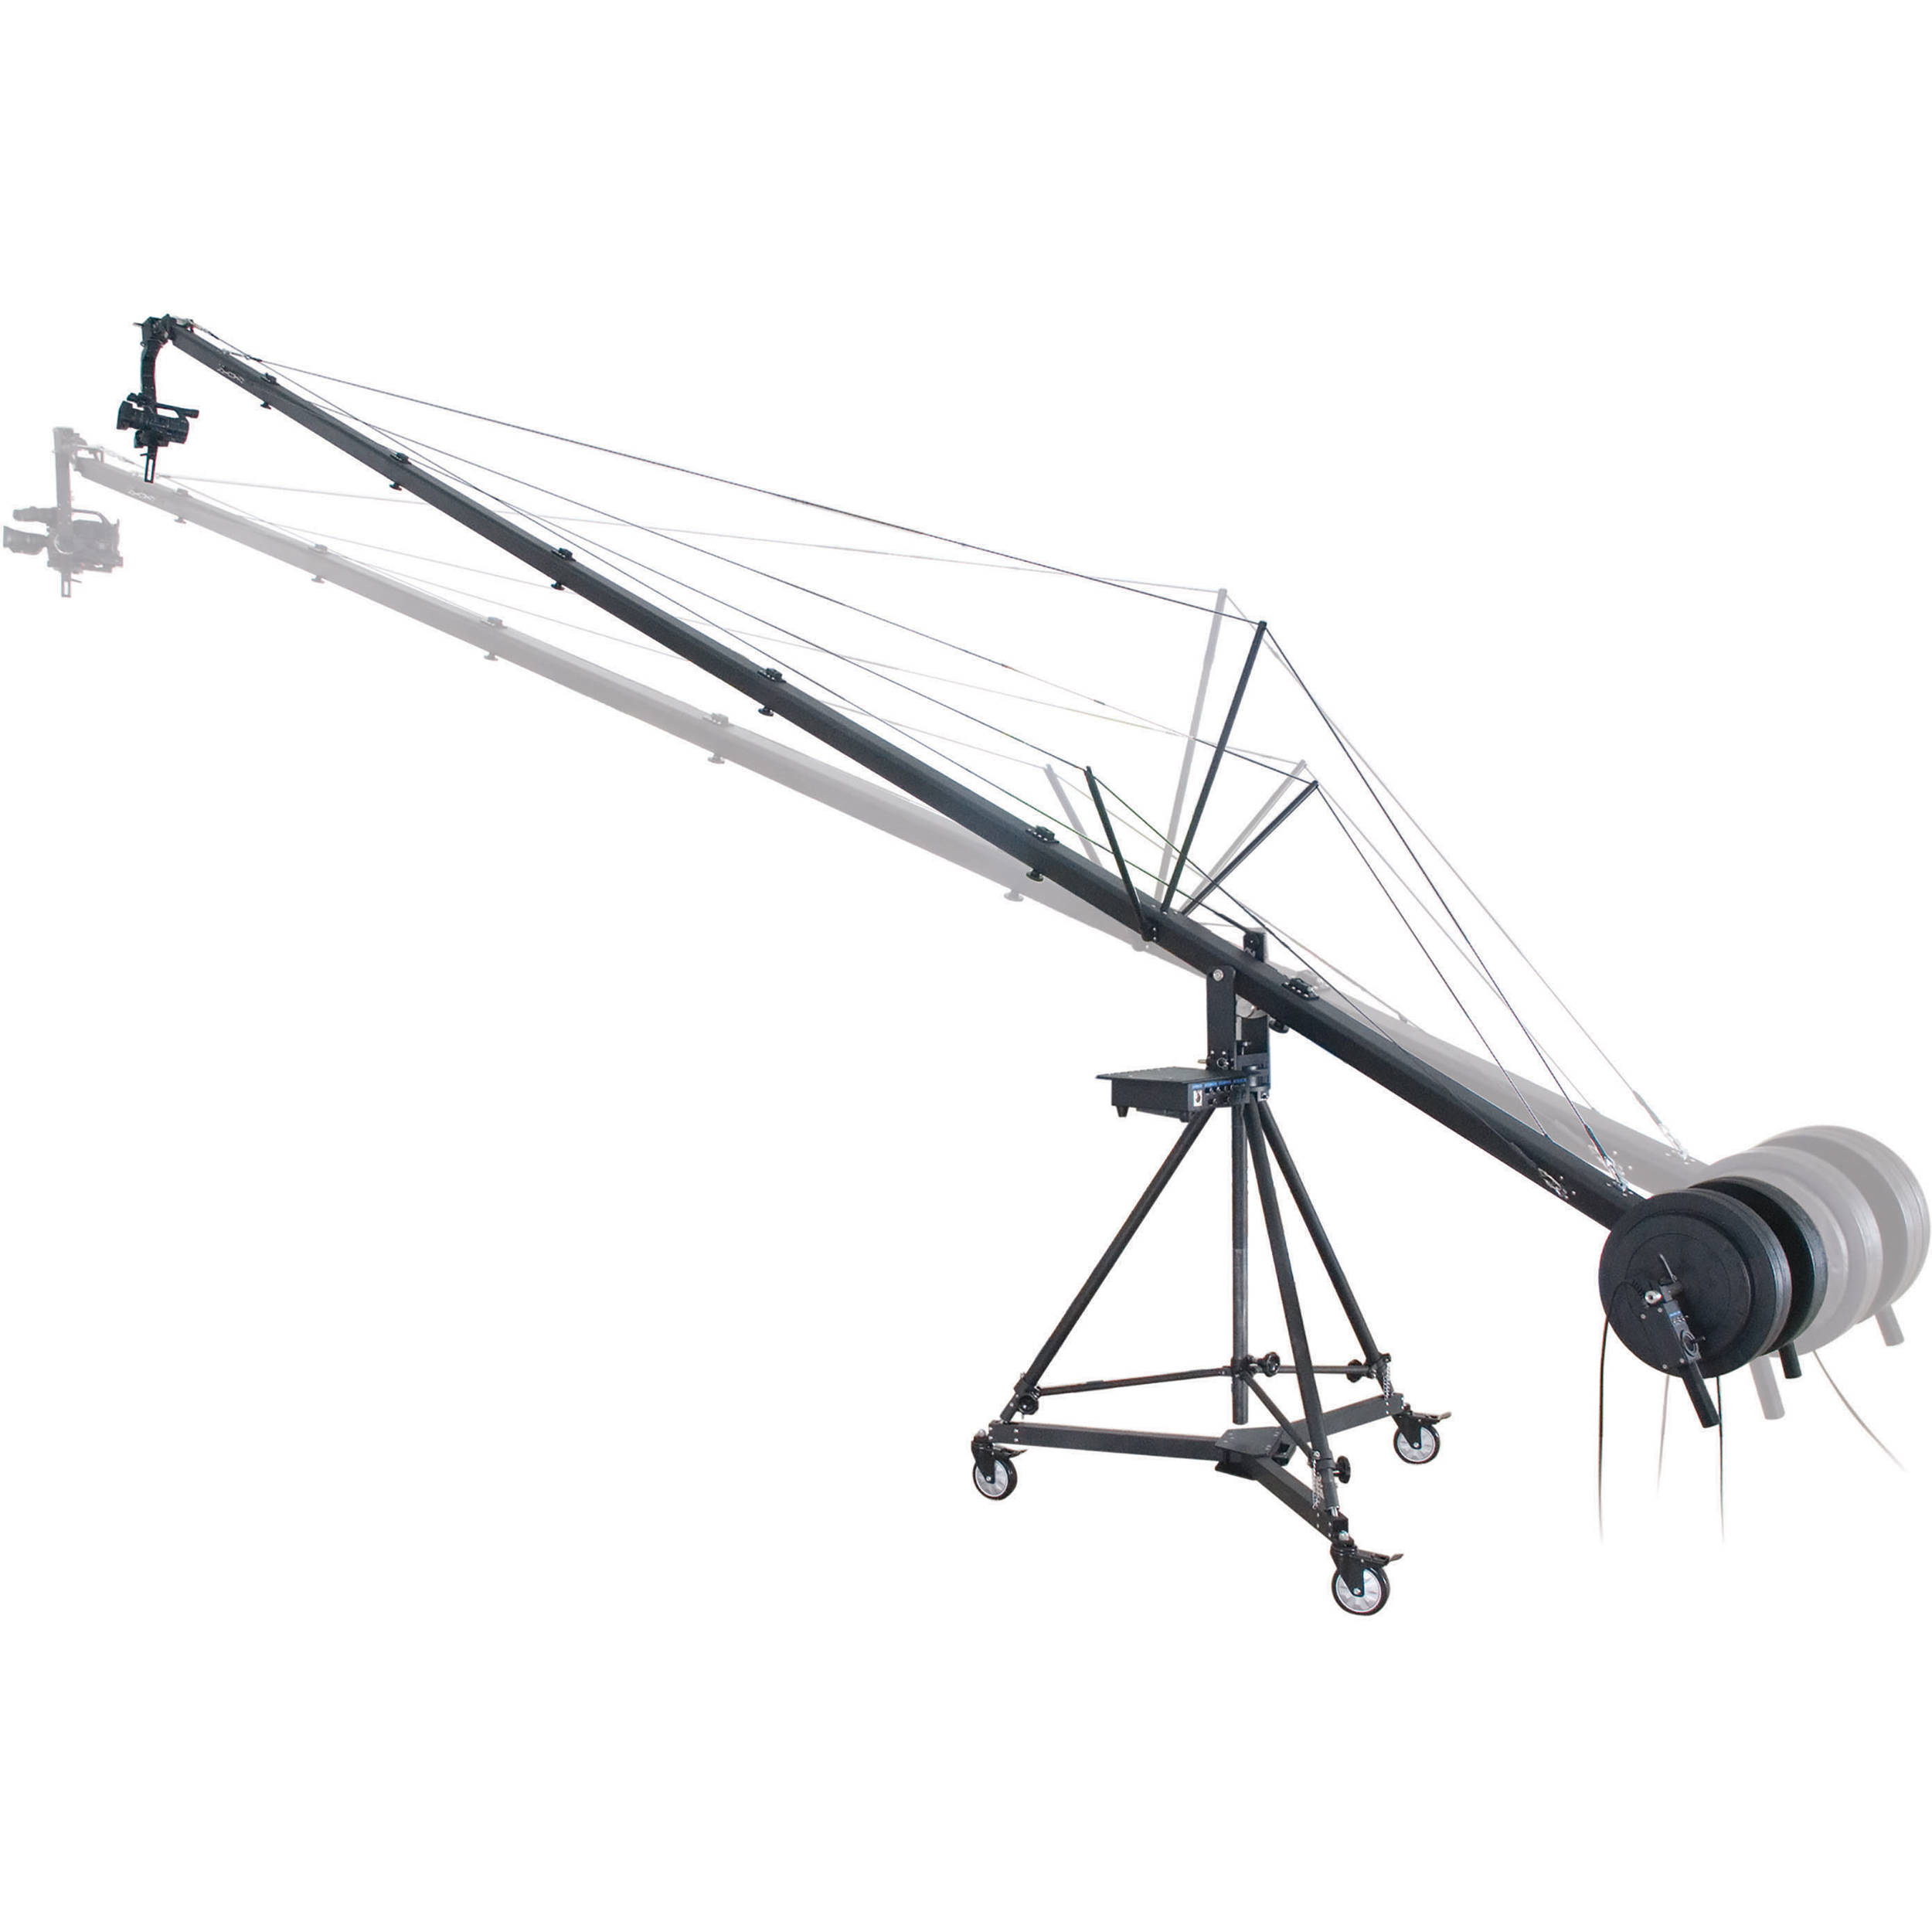 Secced 6m Travelling Crane For Dv Camcorders 3 065 B Amp H Photo